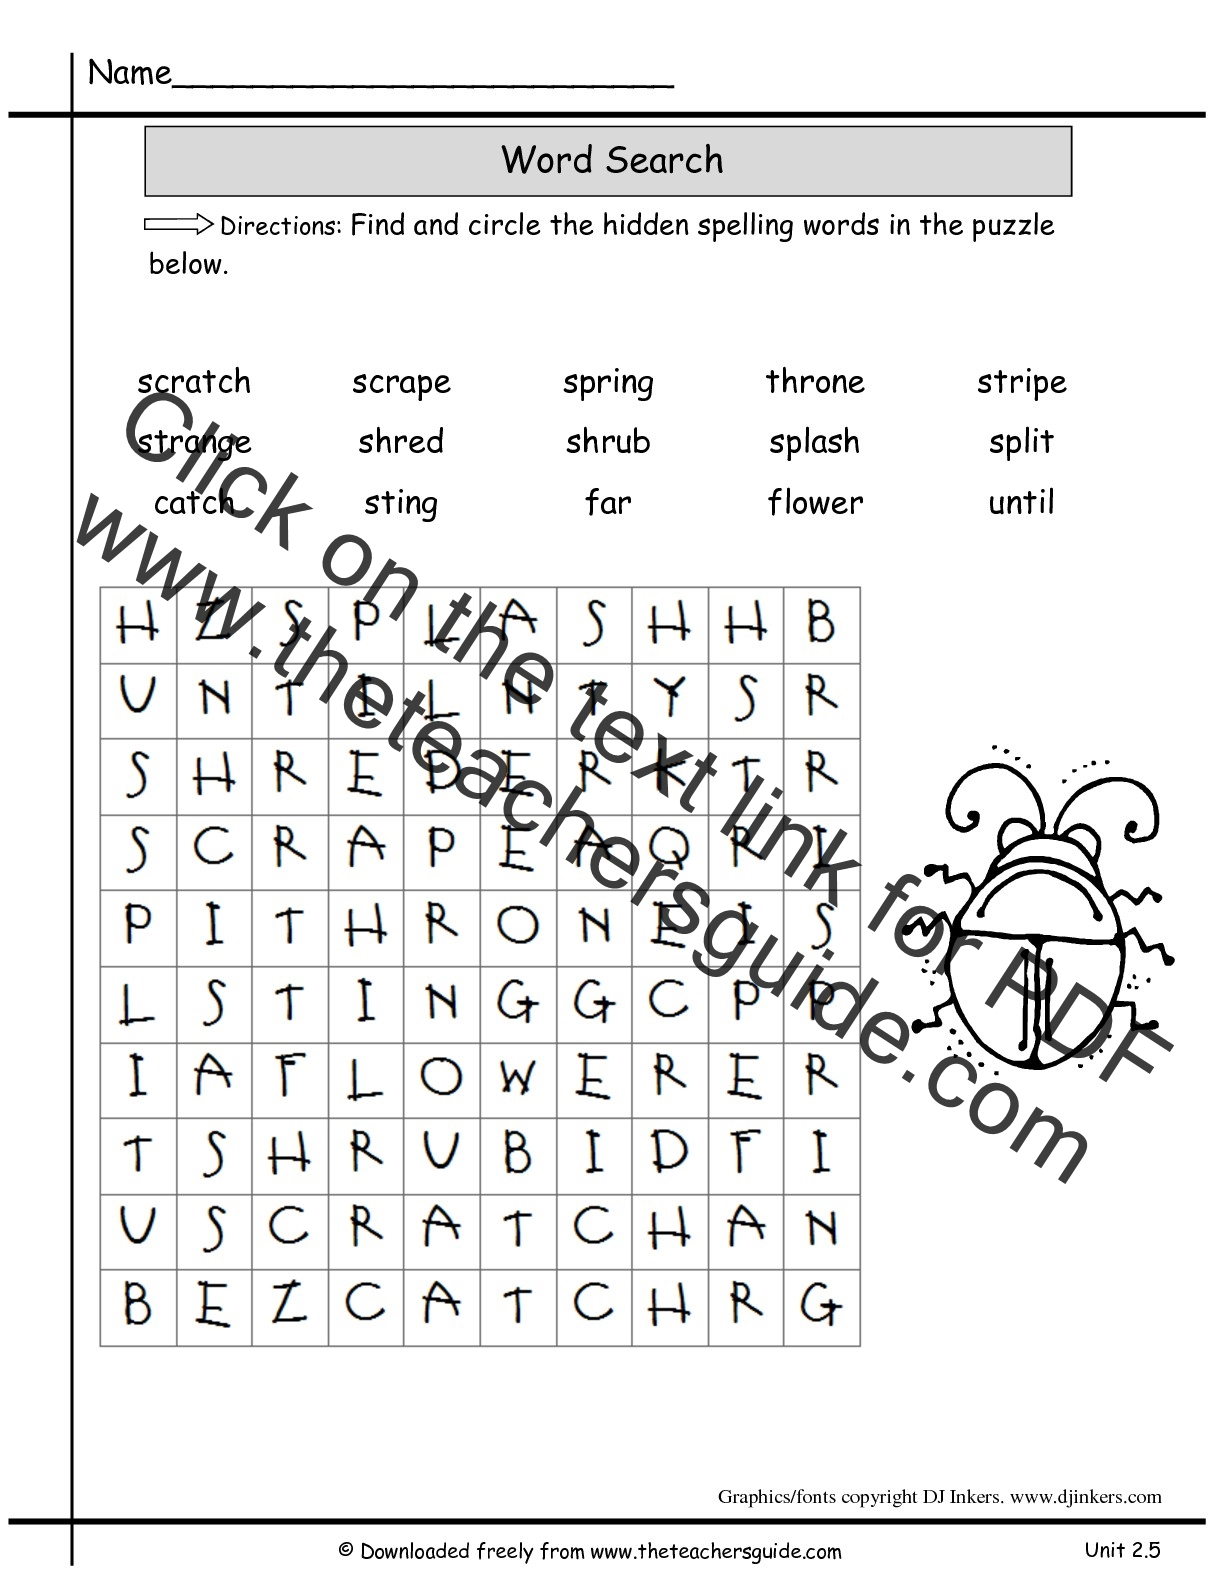 2nd Grade Word Search Printable That Are Bright